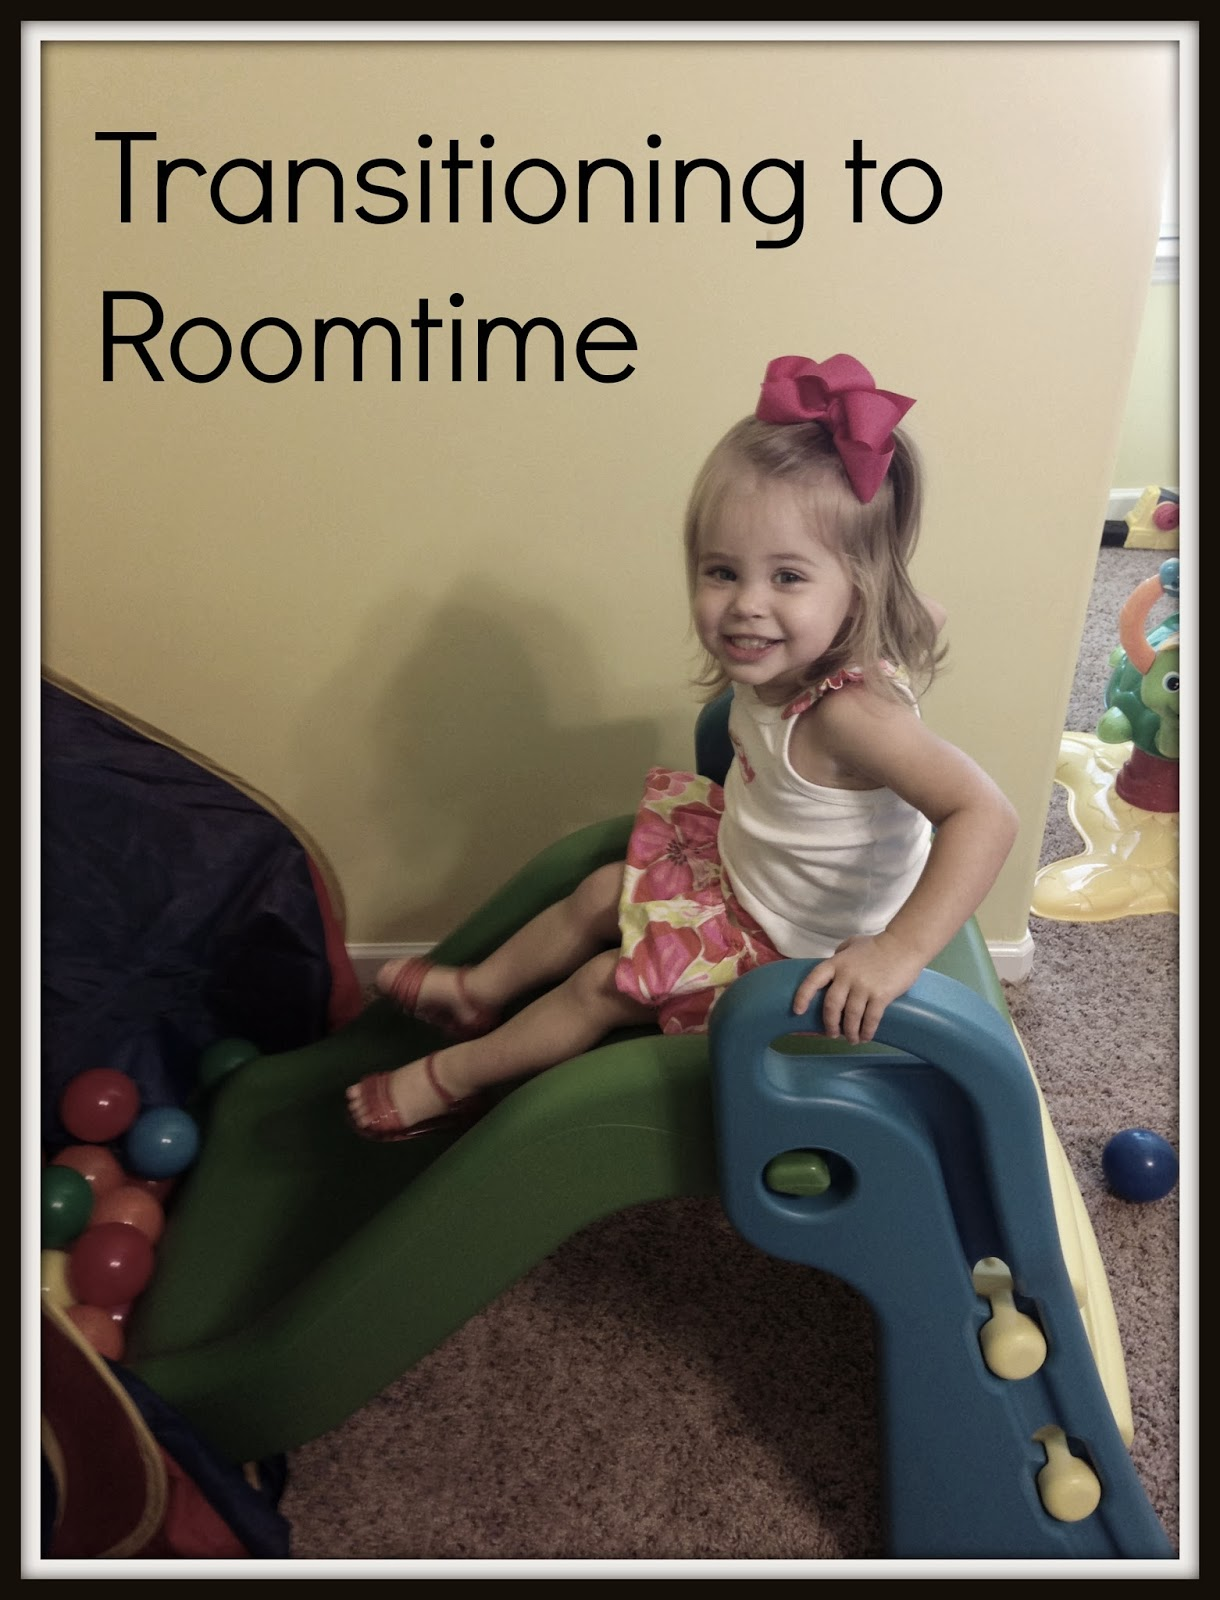 Moving to Roomtime